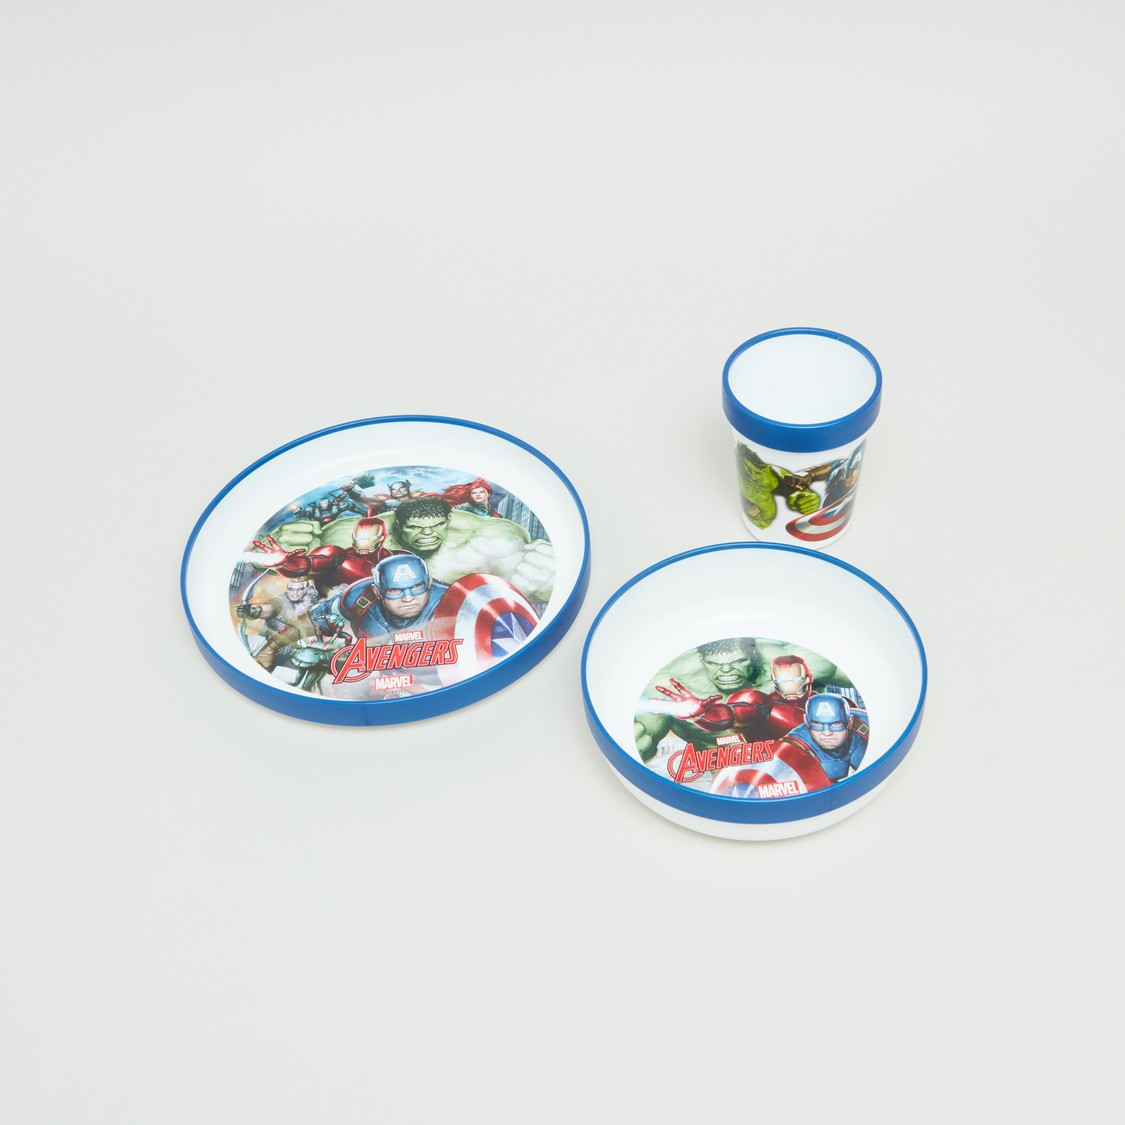 Avengers Printed 3-Piece Meal Set - 20x7 cms